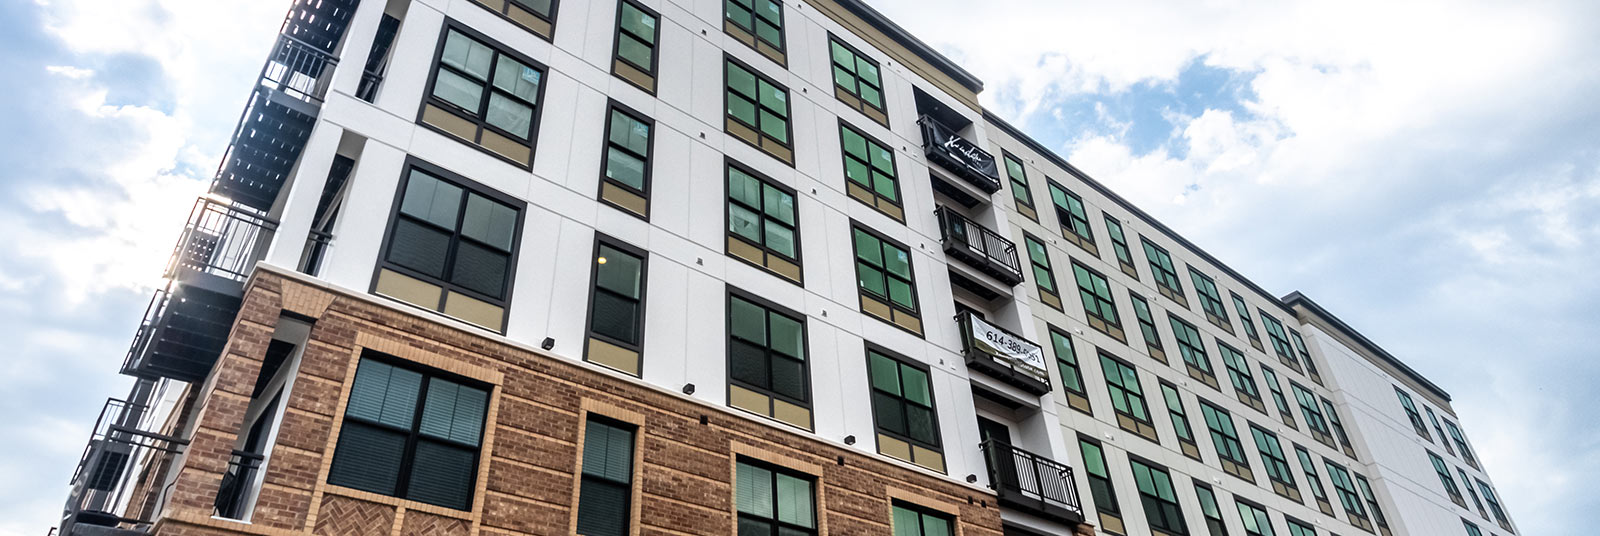 View of the multi-story housing at Xander on State in Columbus, Ohio.